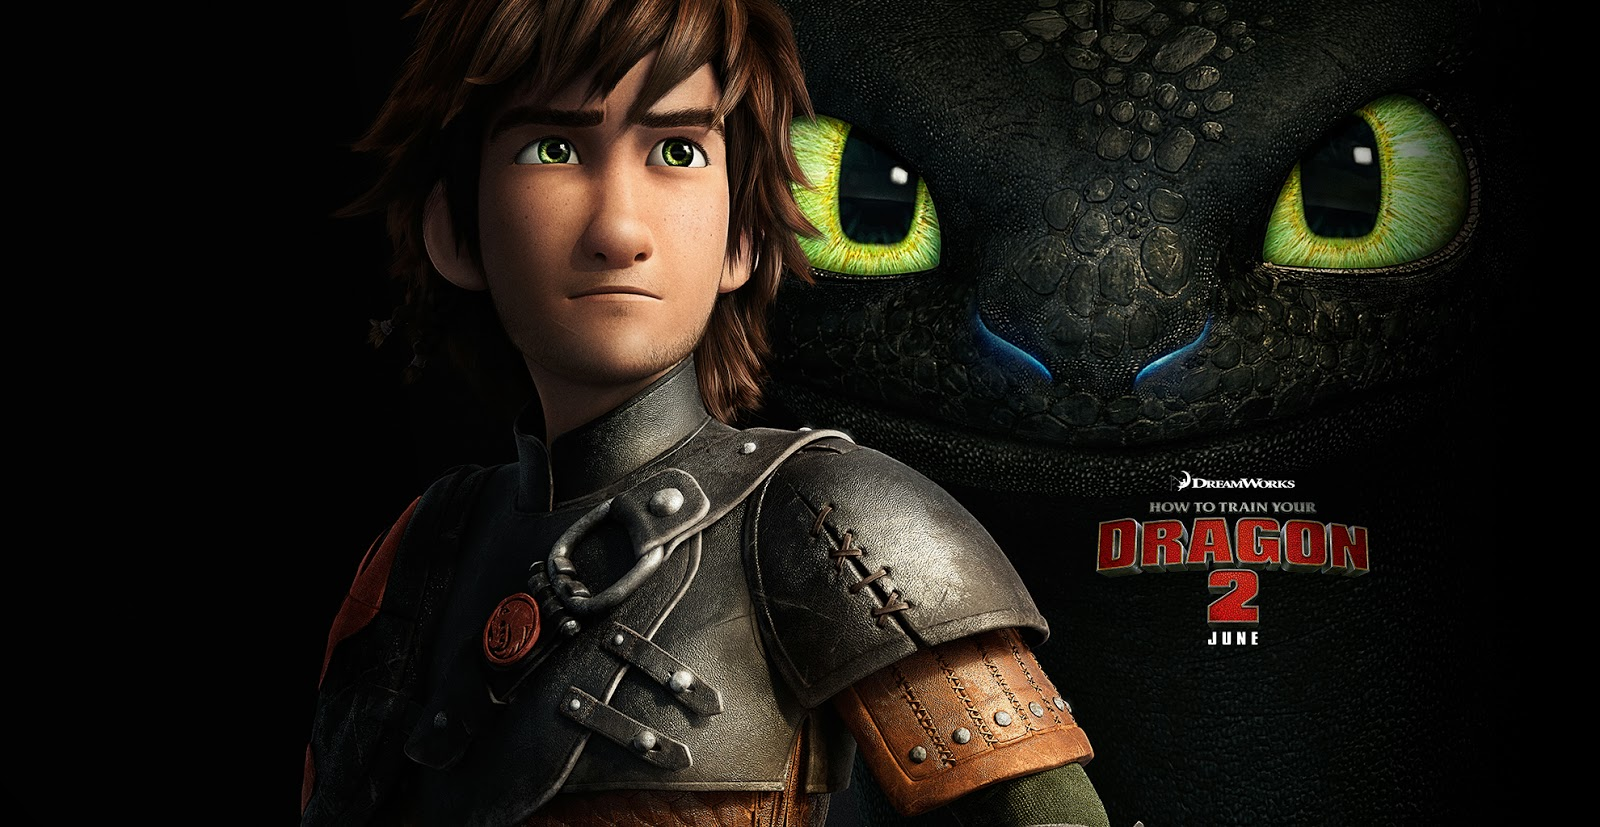 how to train your dragon 2 images how to train your dragon 2 hd